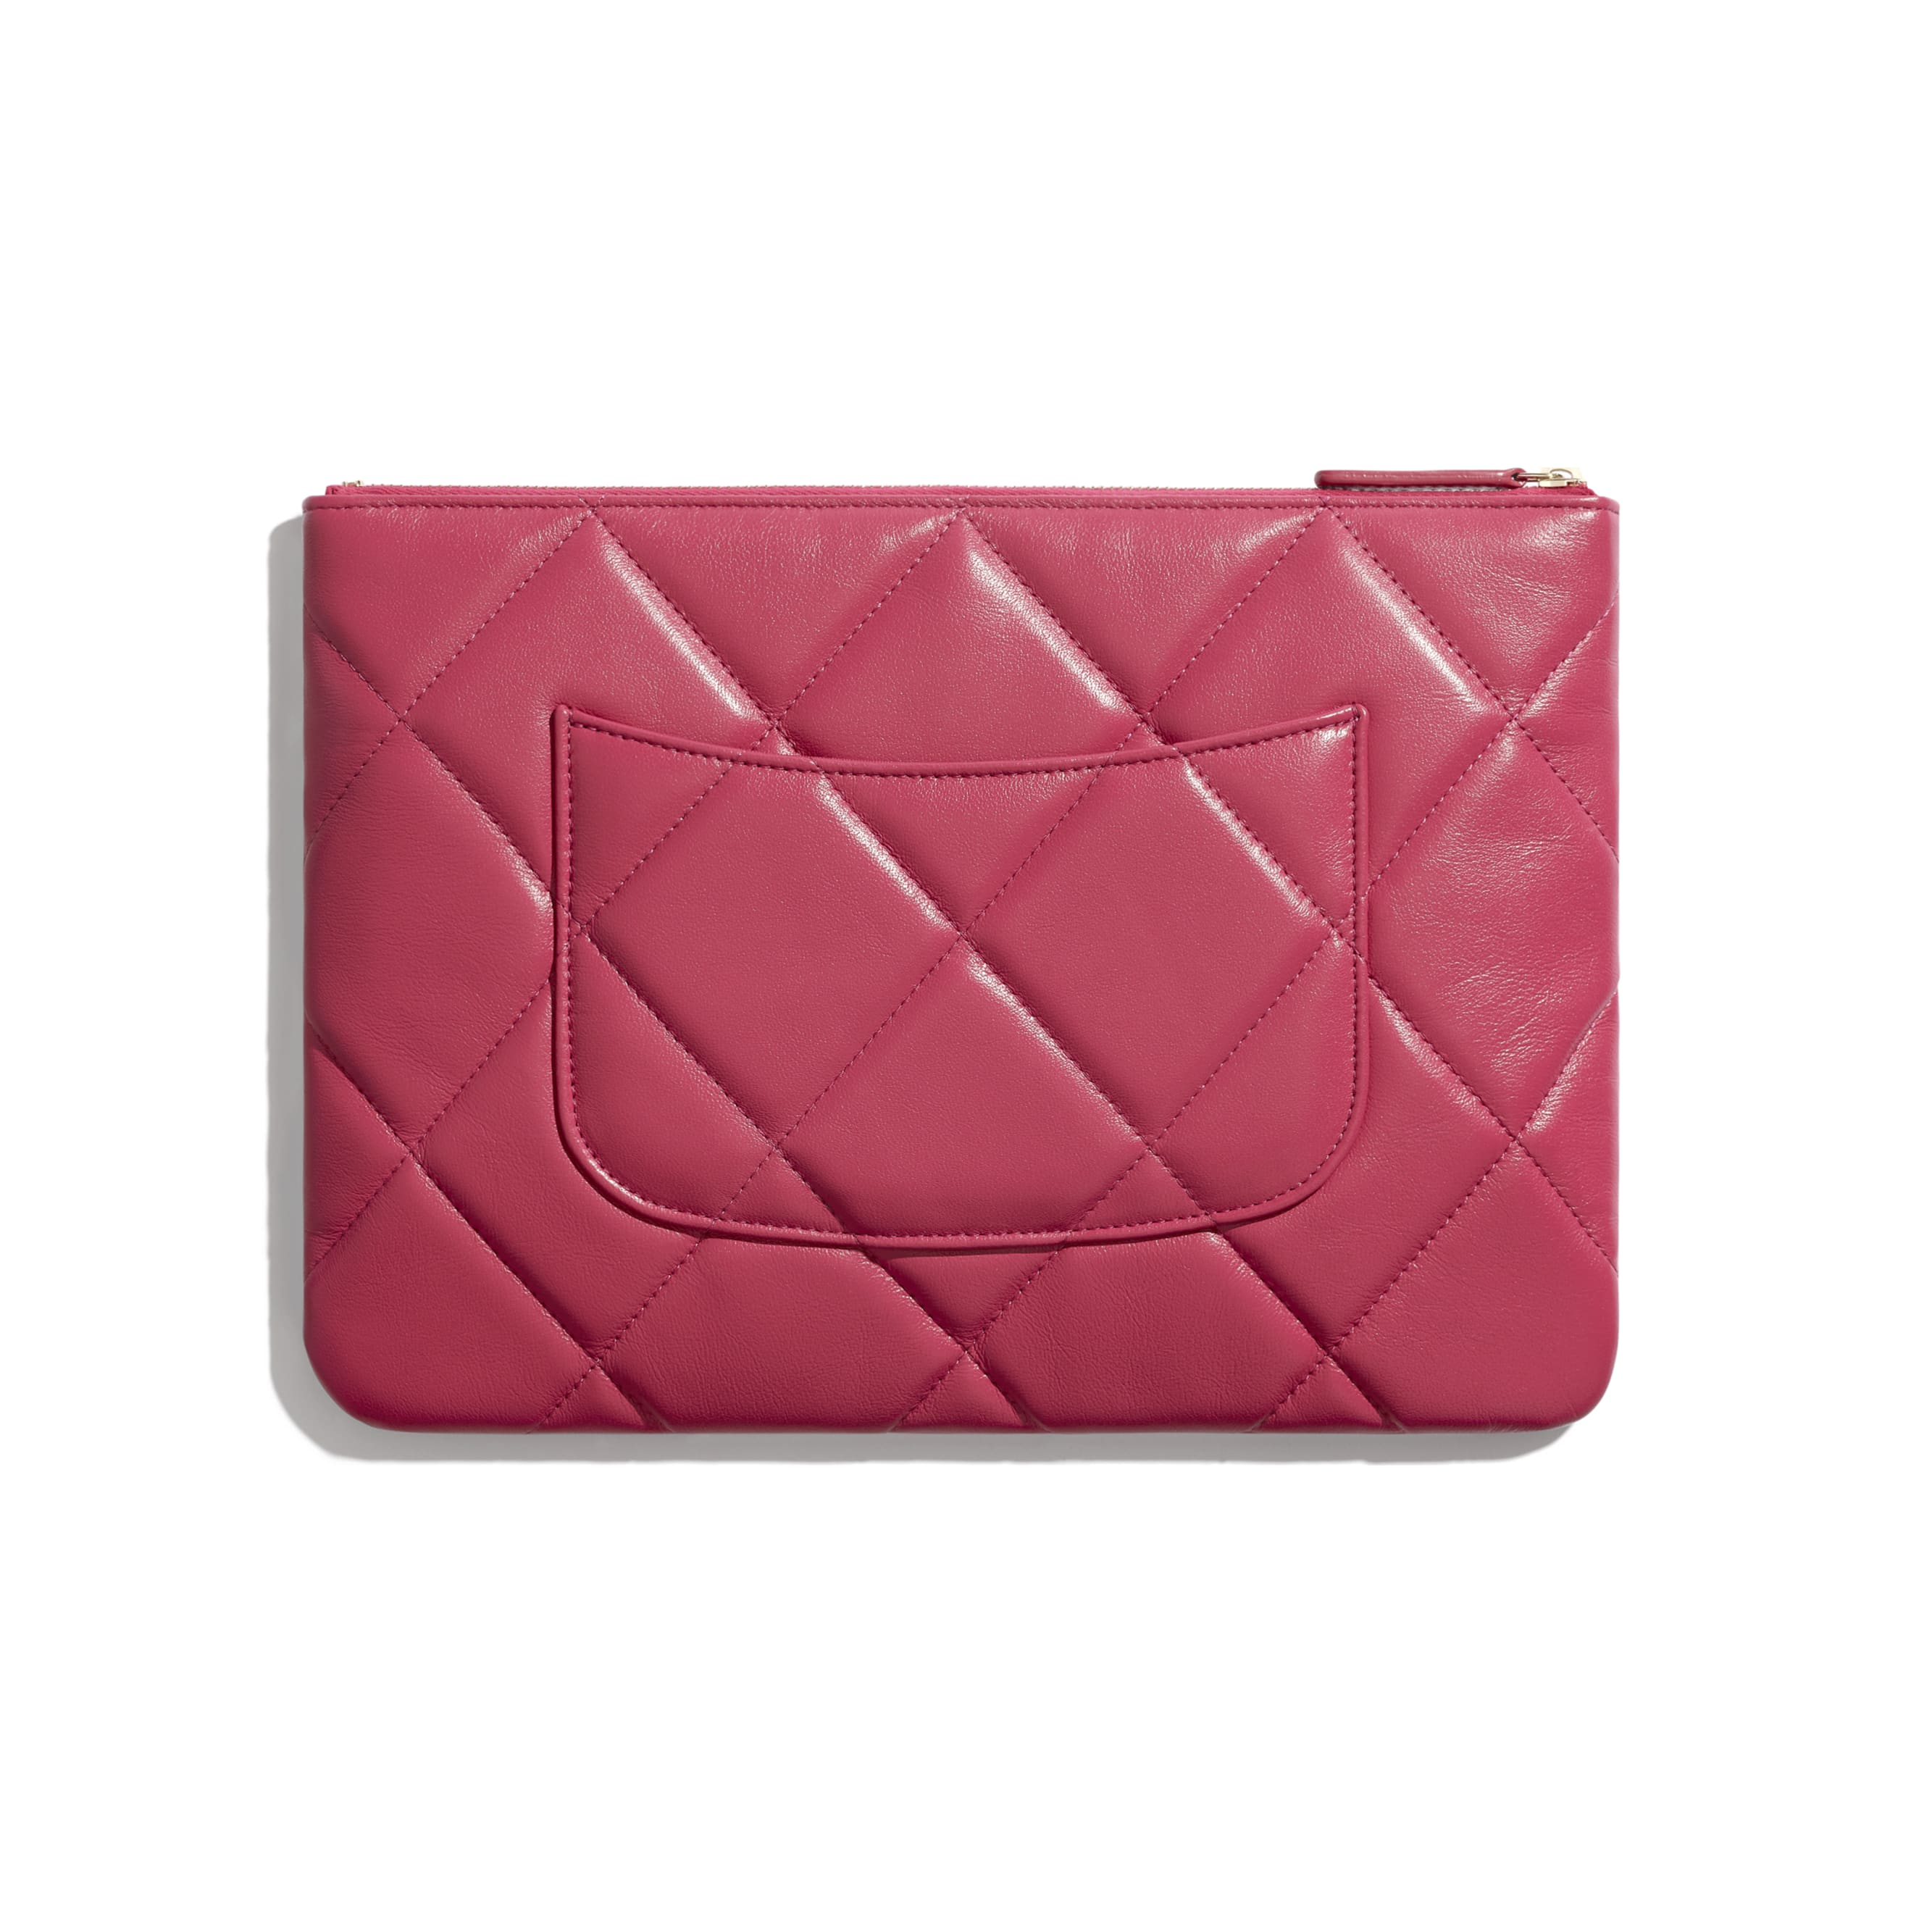 CHANEL 19 Pouch - Dark Pink - Lambskin, Gold-Tone, Silver-Tone & Ruthenium-Finish Metal - CHANEL - Alternative view - see standard sized version